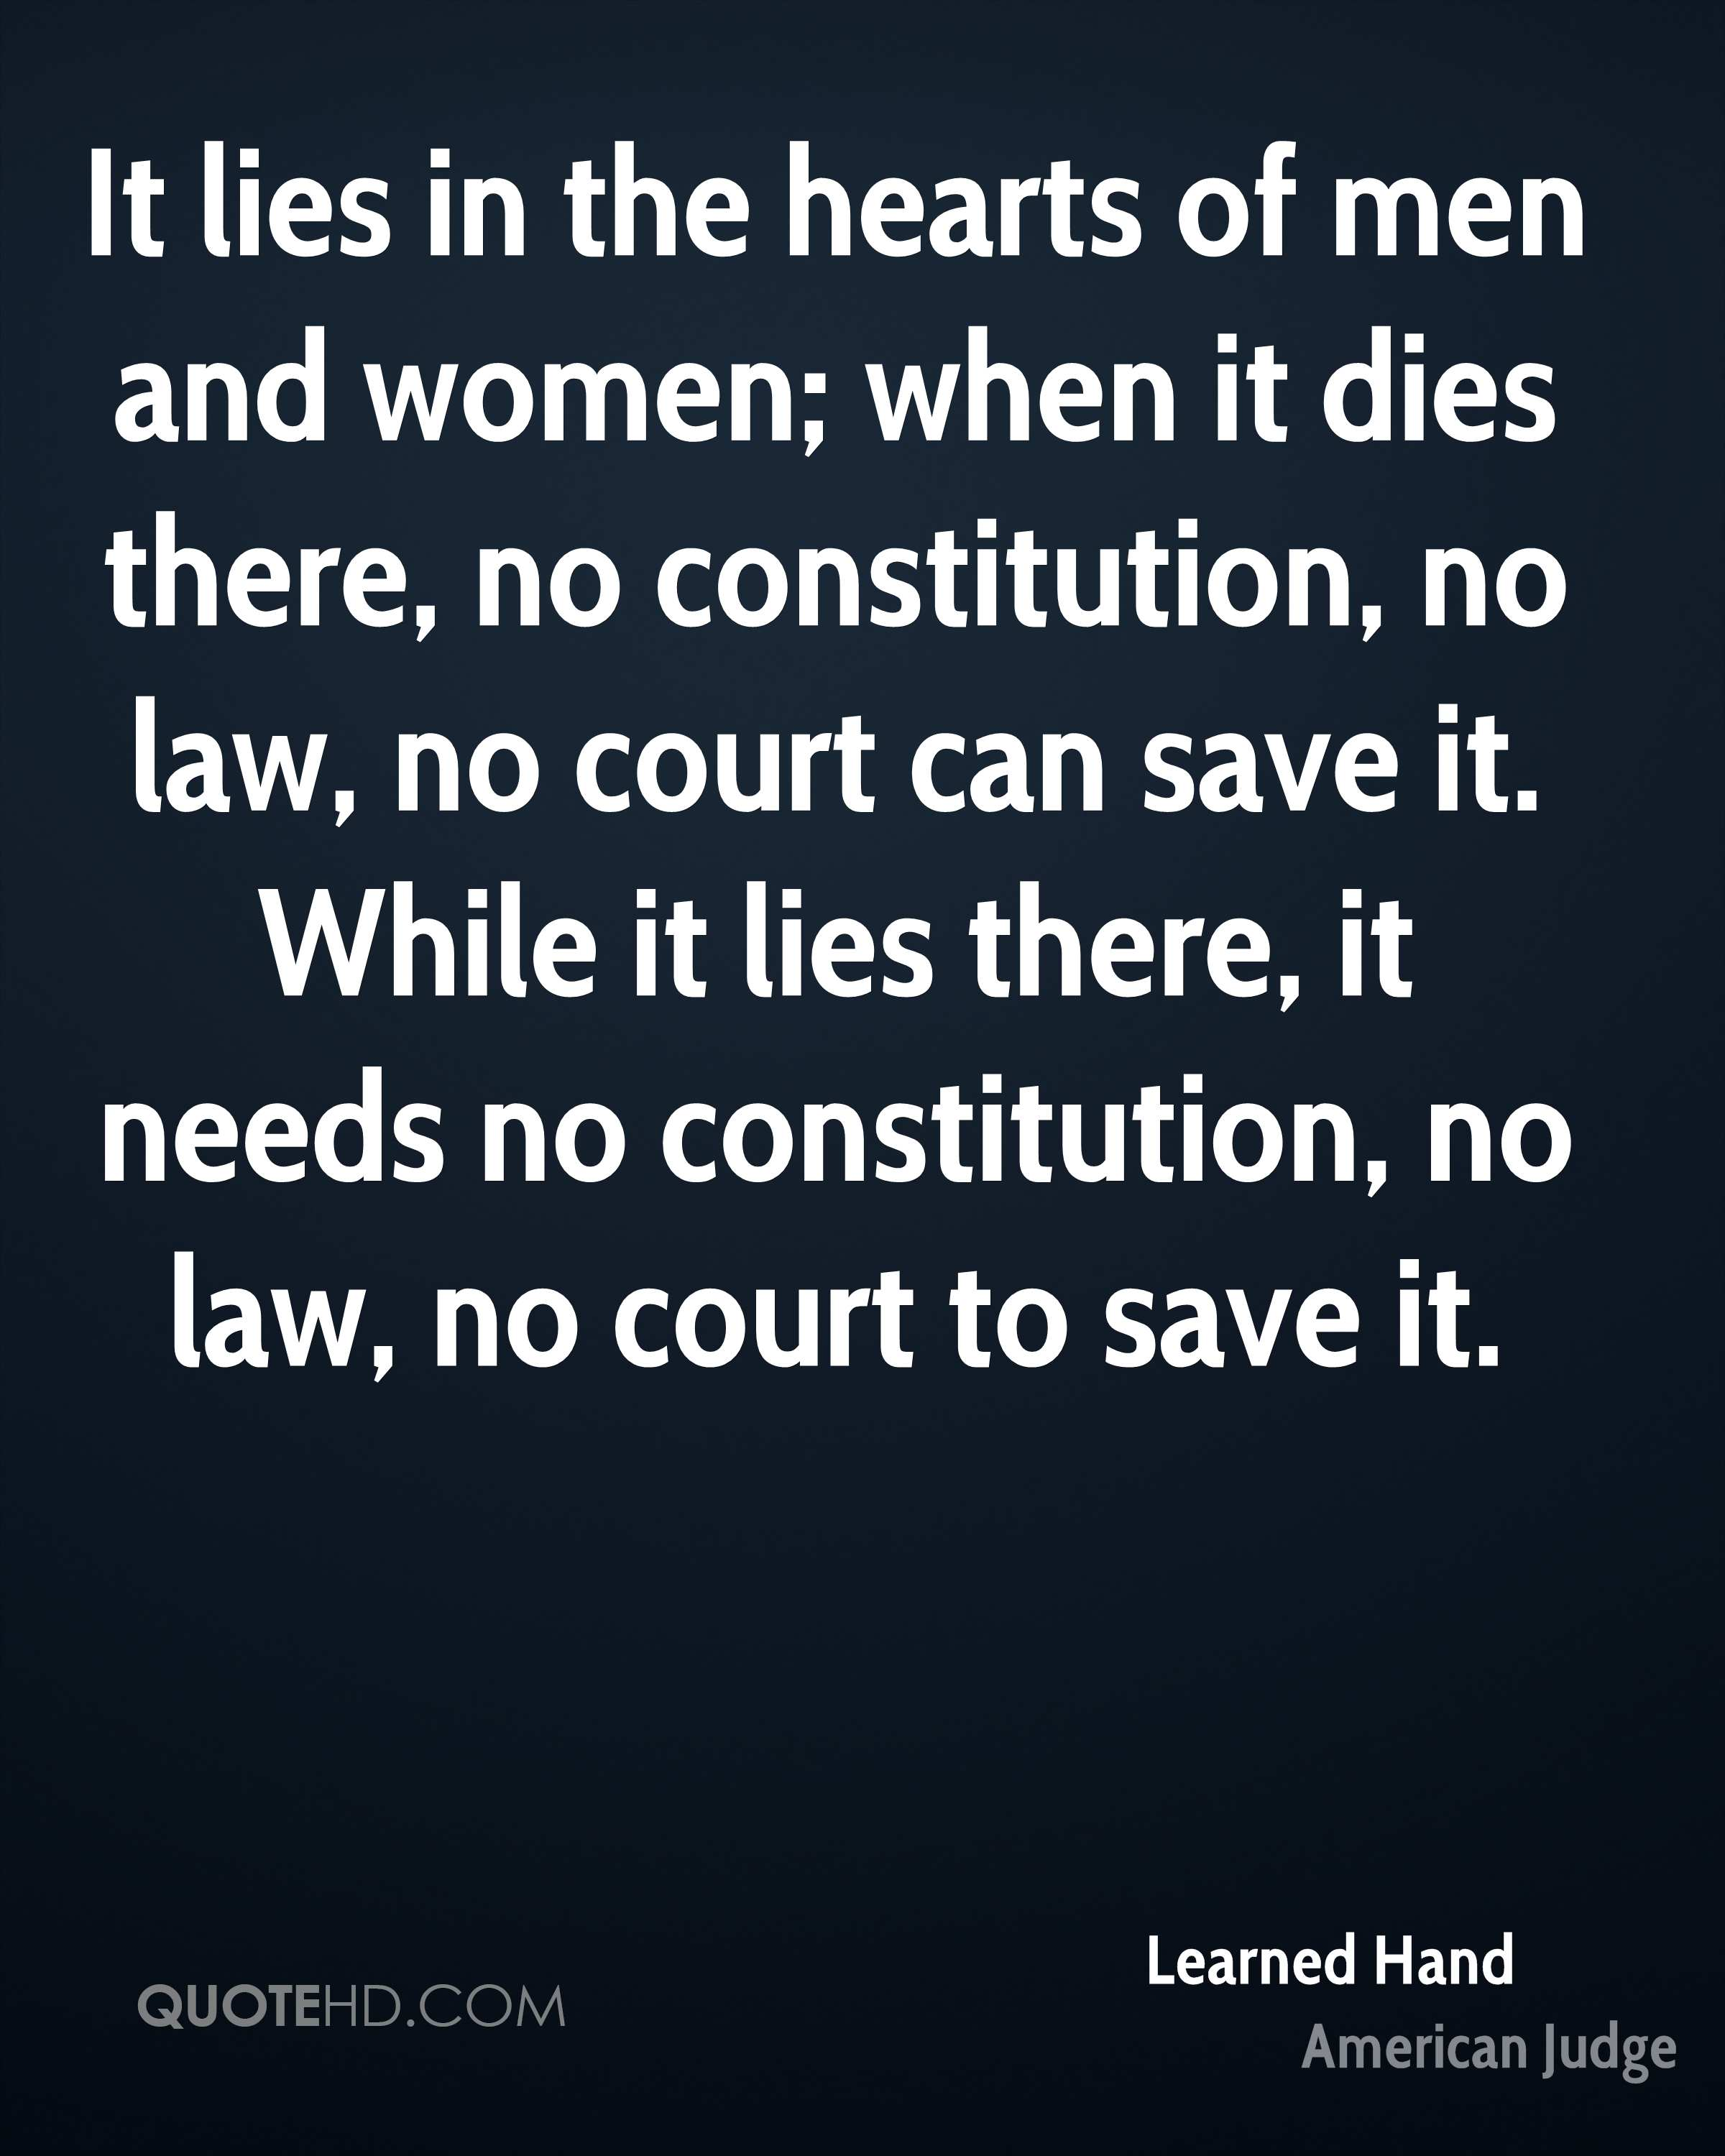 It lies in the hearts of men and women; when it dies there, no constitution, no law, no court can save it. While it lies there, it needs no constitution, no law, no court to save it.